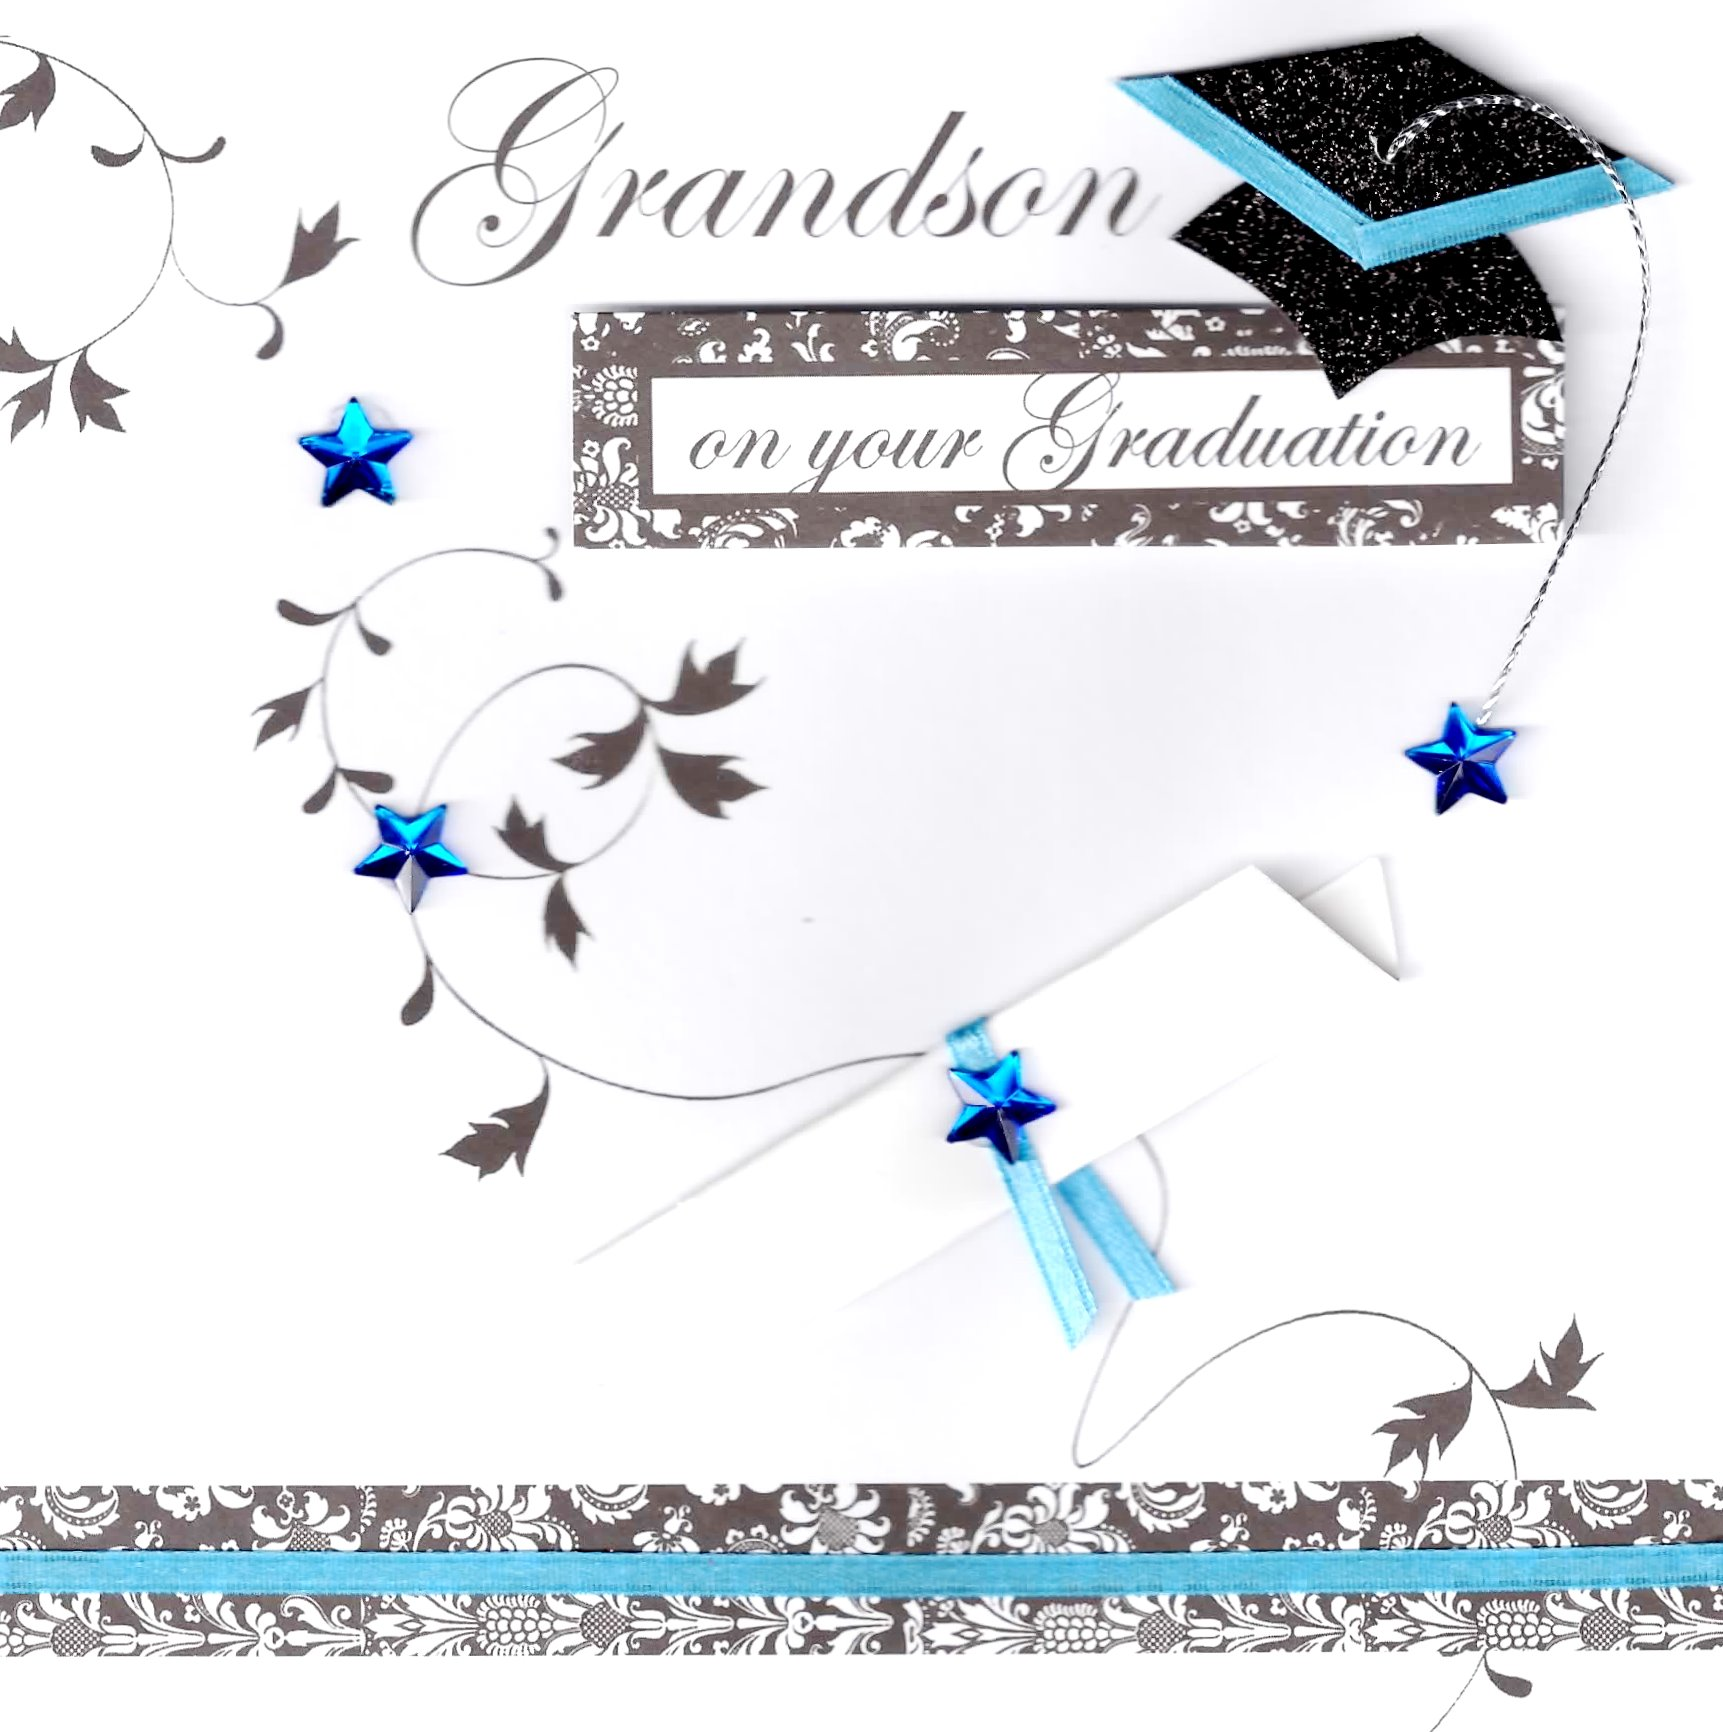 Grandson on your graduation congratulations greeting card cards grandson on your graduation congratulations greeting card kristyandbryce Gallery